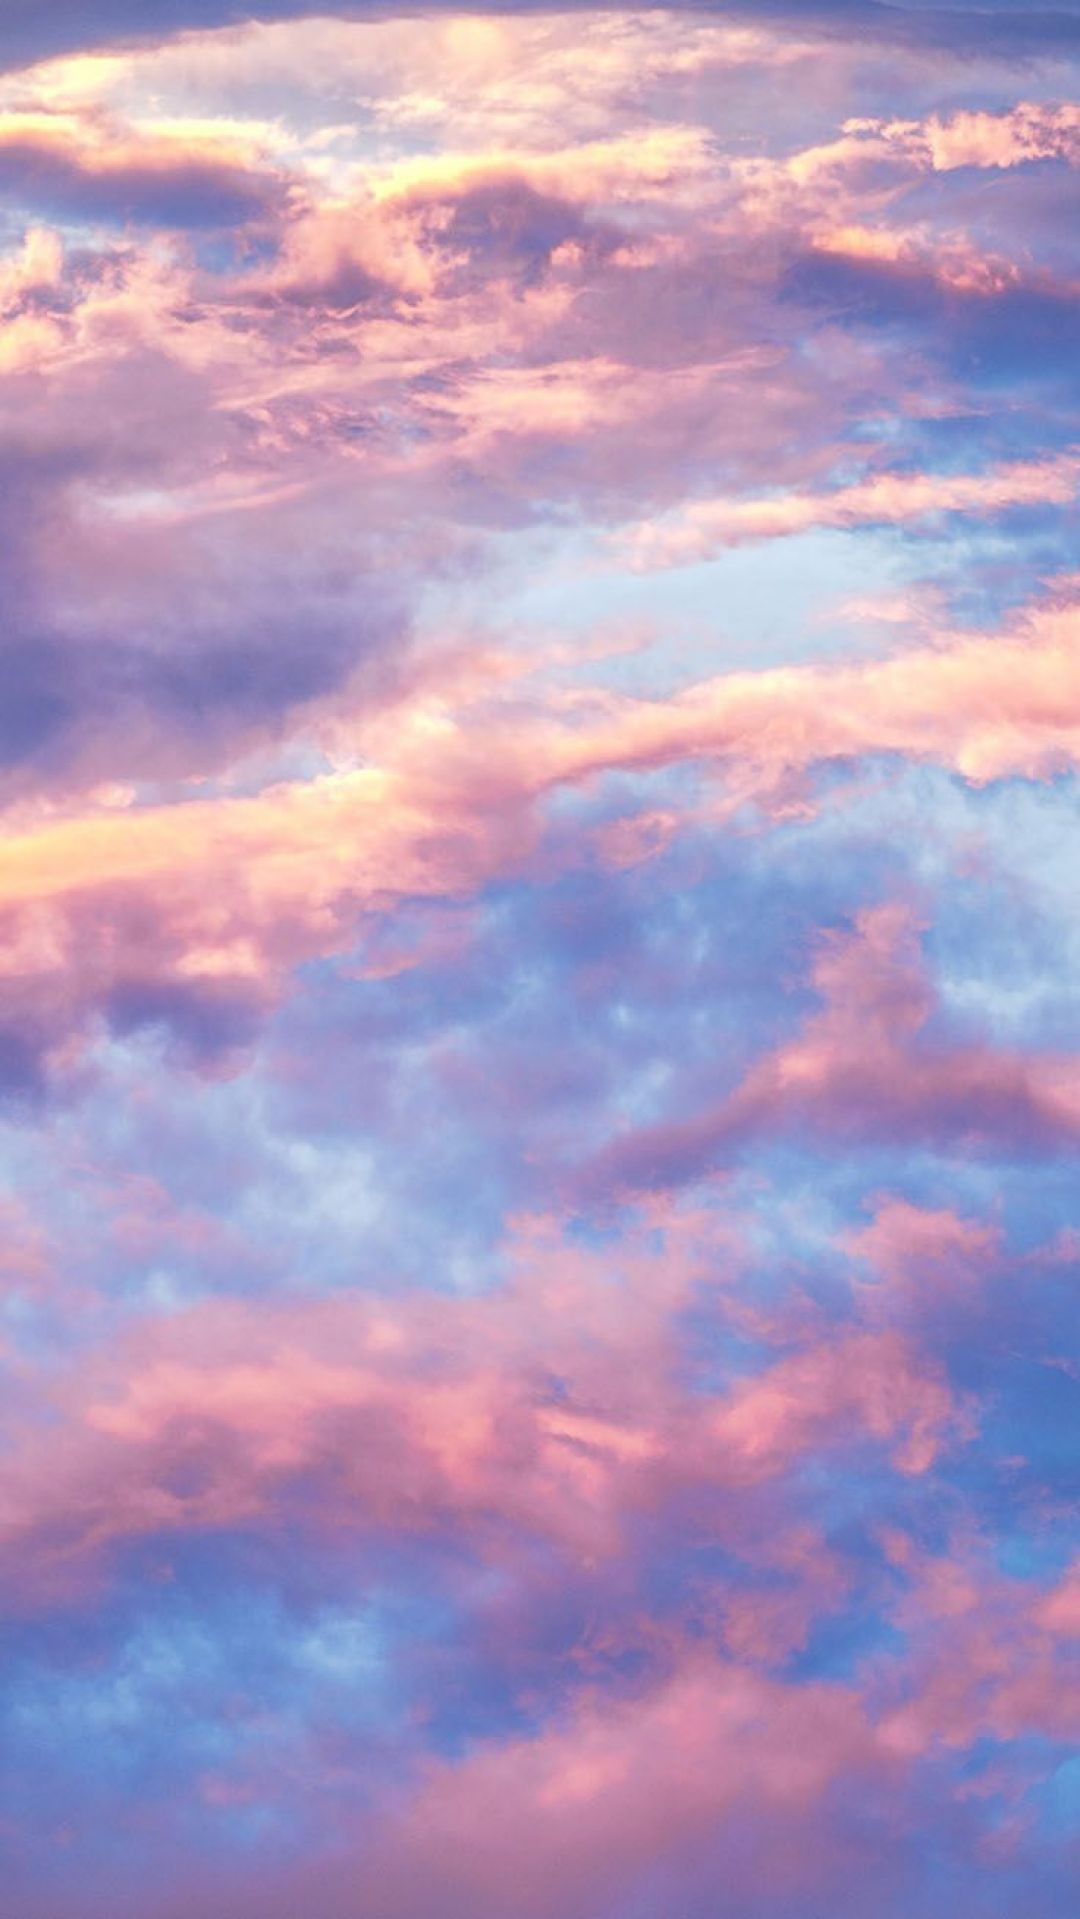 Clouds Android Iphone Desktop Hd Backgrounds Wallpapers 1080p 4k 113982 Hdwallpapers Preppy Wallpaper Aesthetic Iphone Wallpaper Cloud Wallpaper